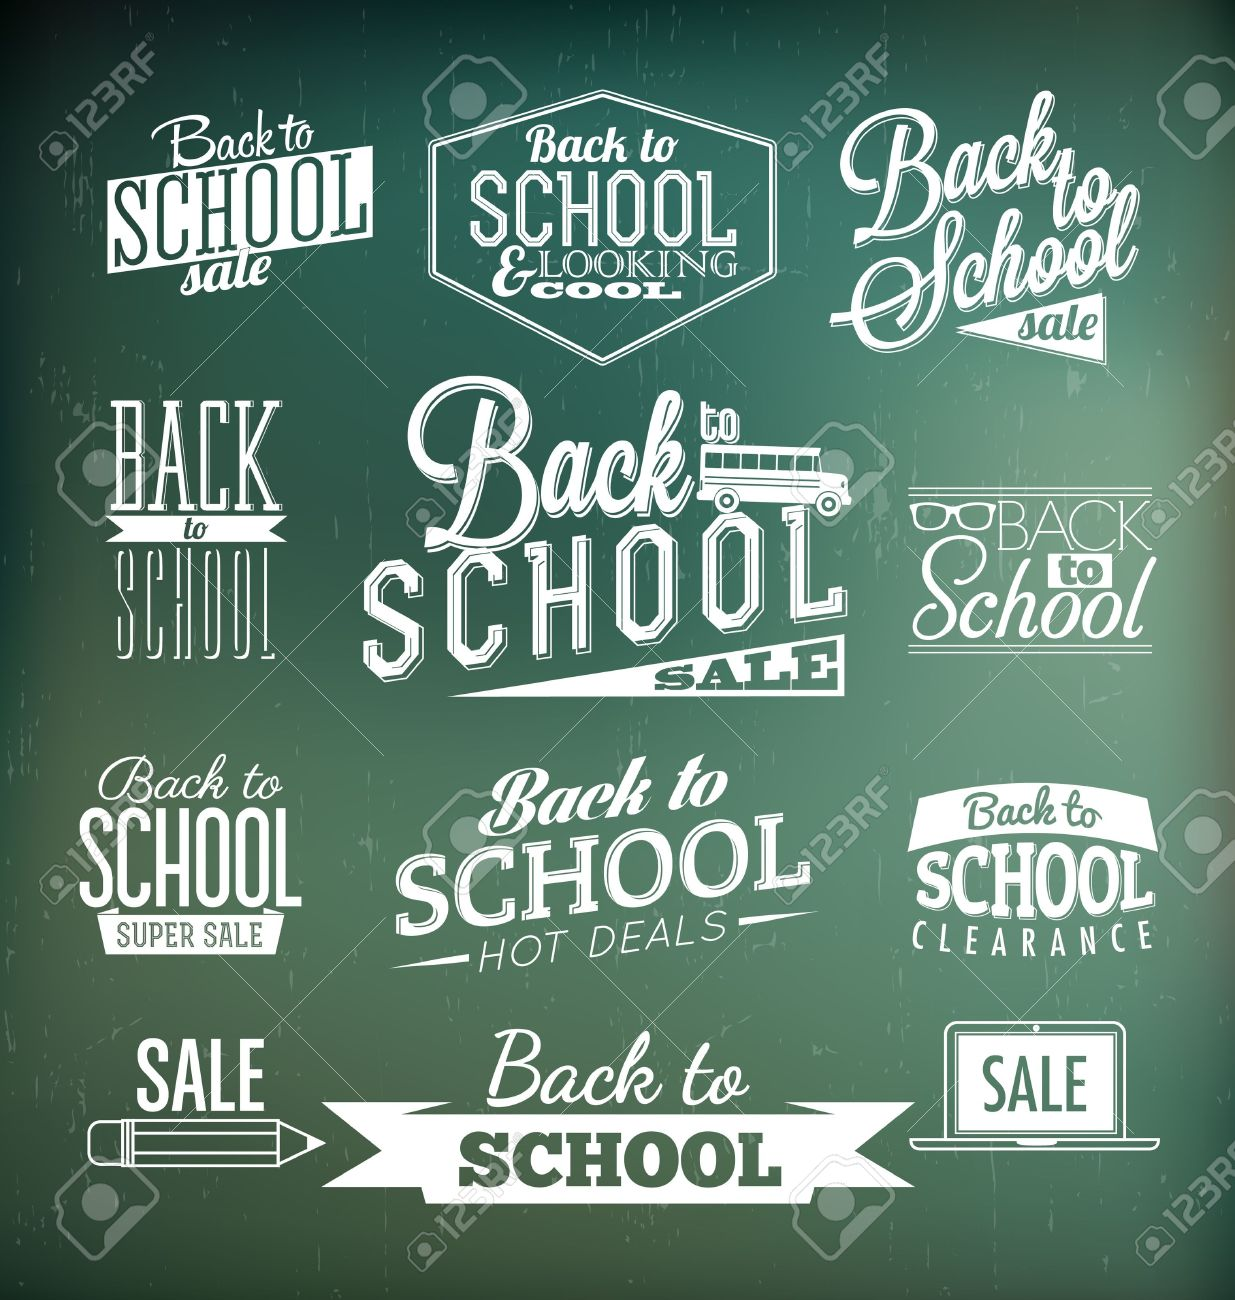 Vintage style ornaments - Back To School Calligraphic Designs Retro Style Elements Vintage Ornaments Sale Clearance Vector Set Stock